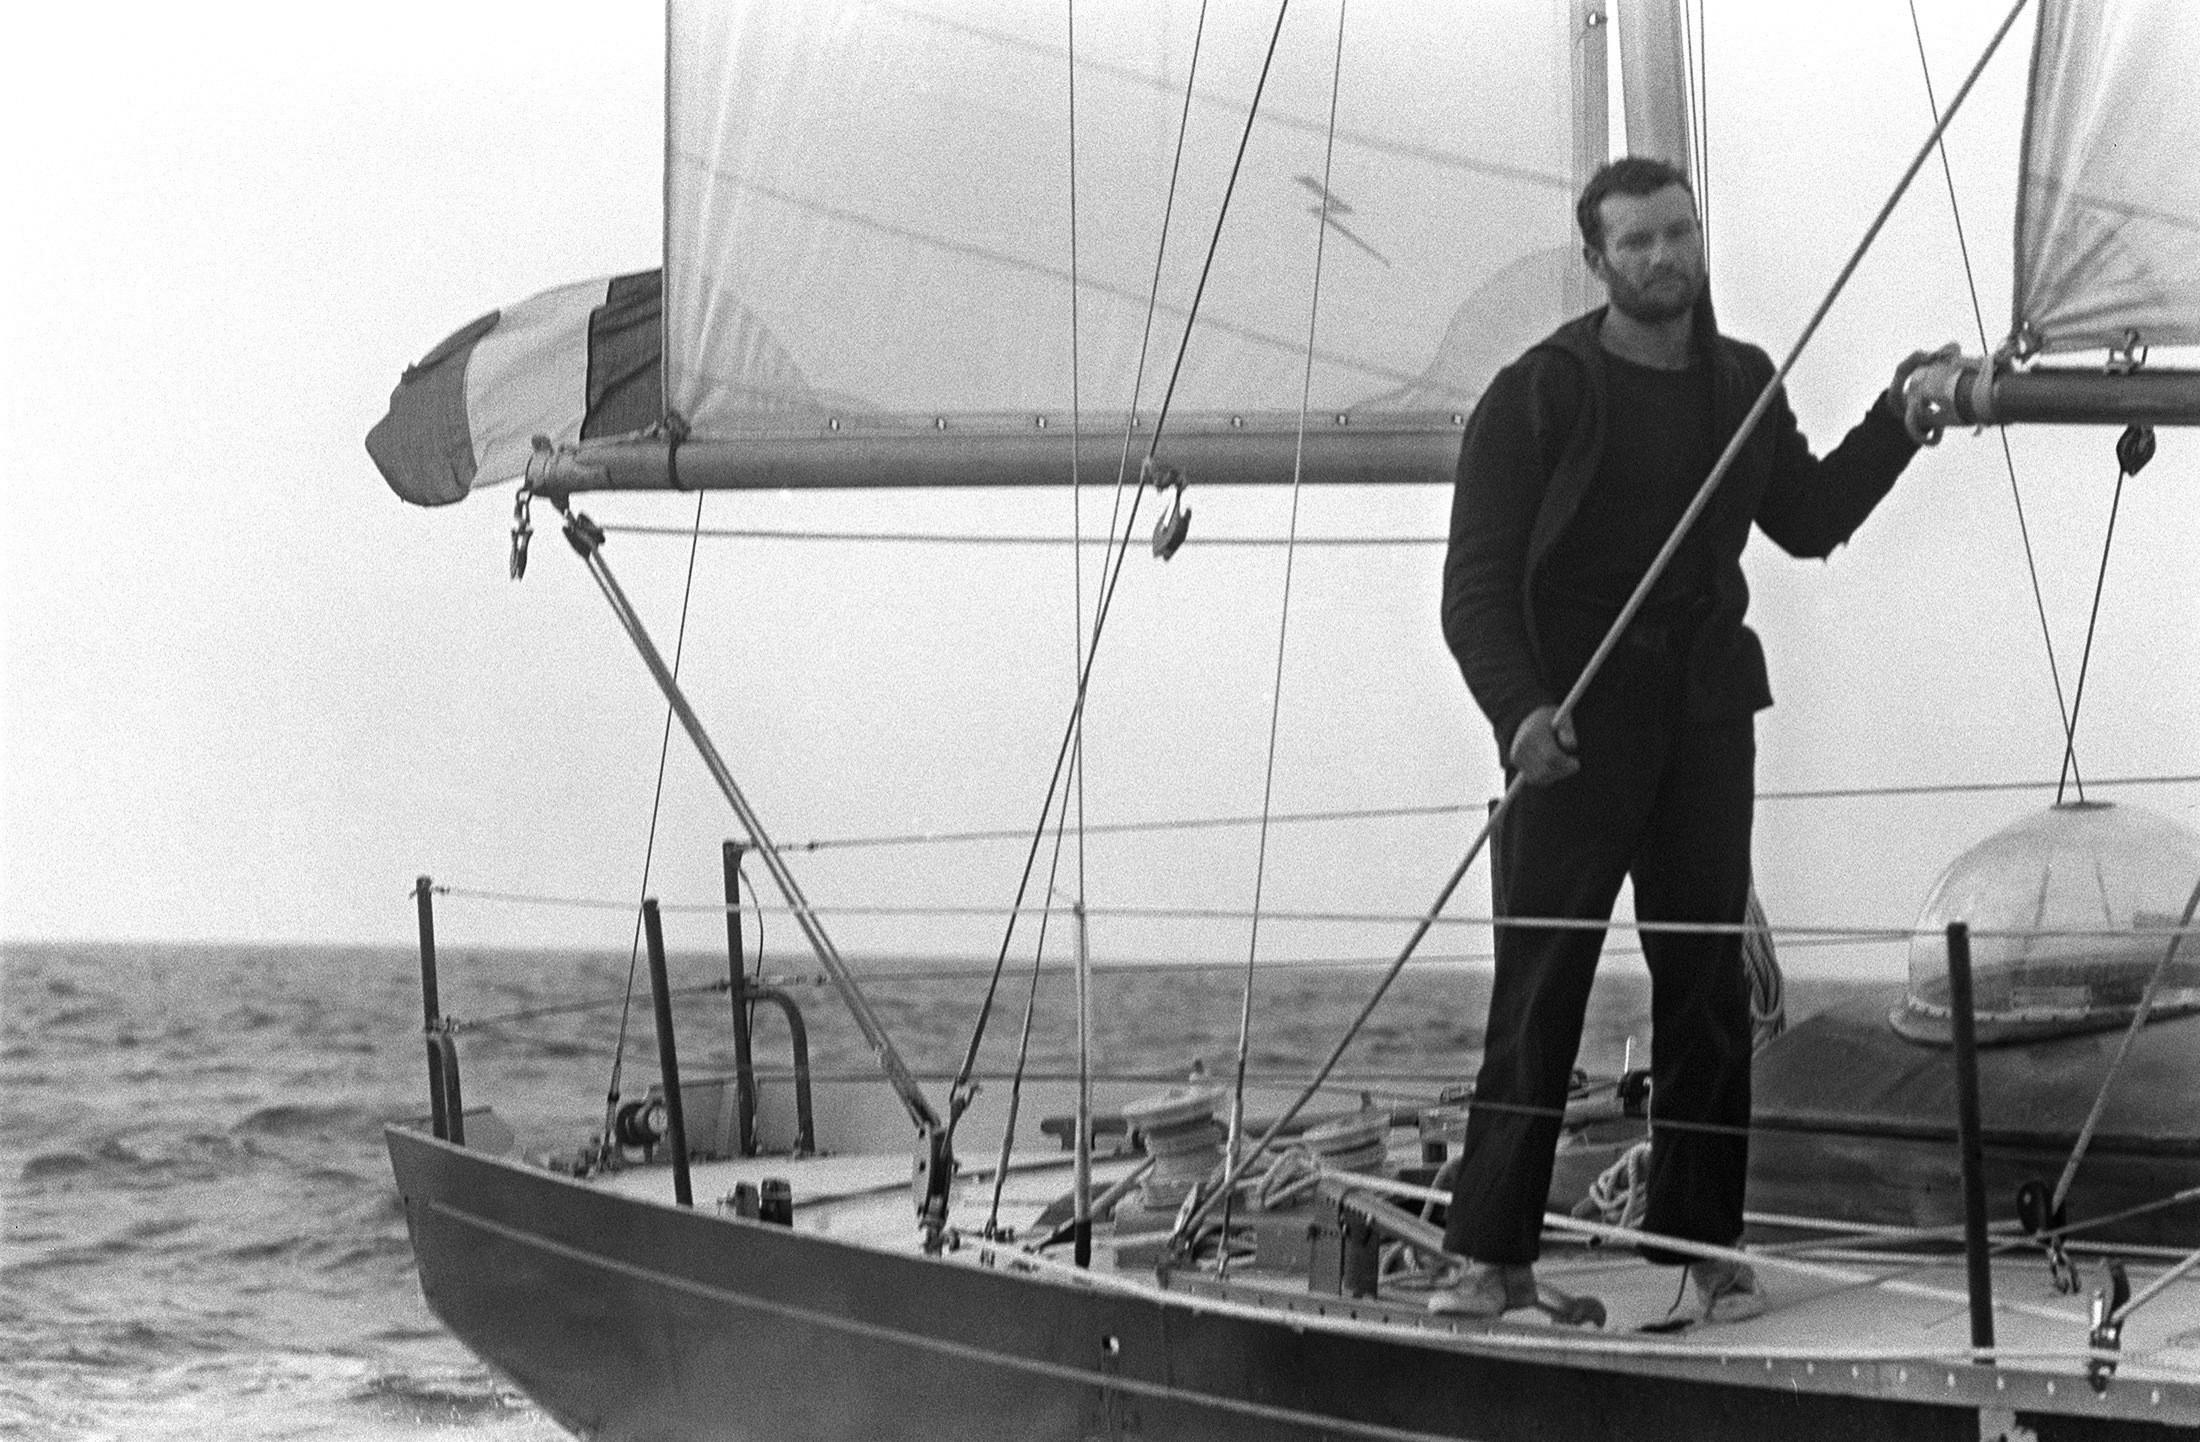 Éric Tabarly  on Pen Duick II after winning the OSTAR. June 18, 1964.